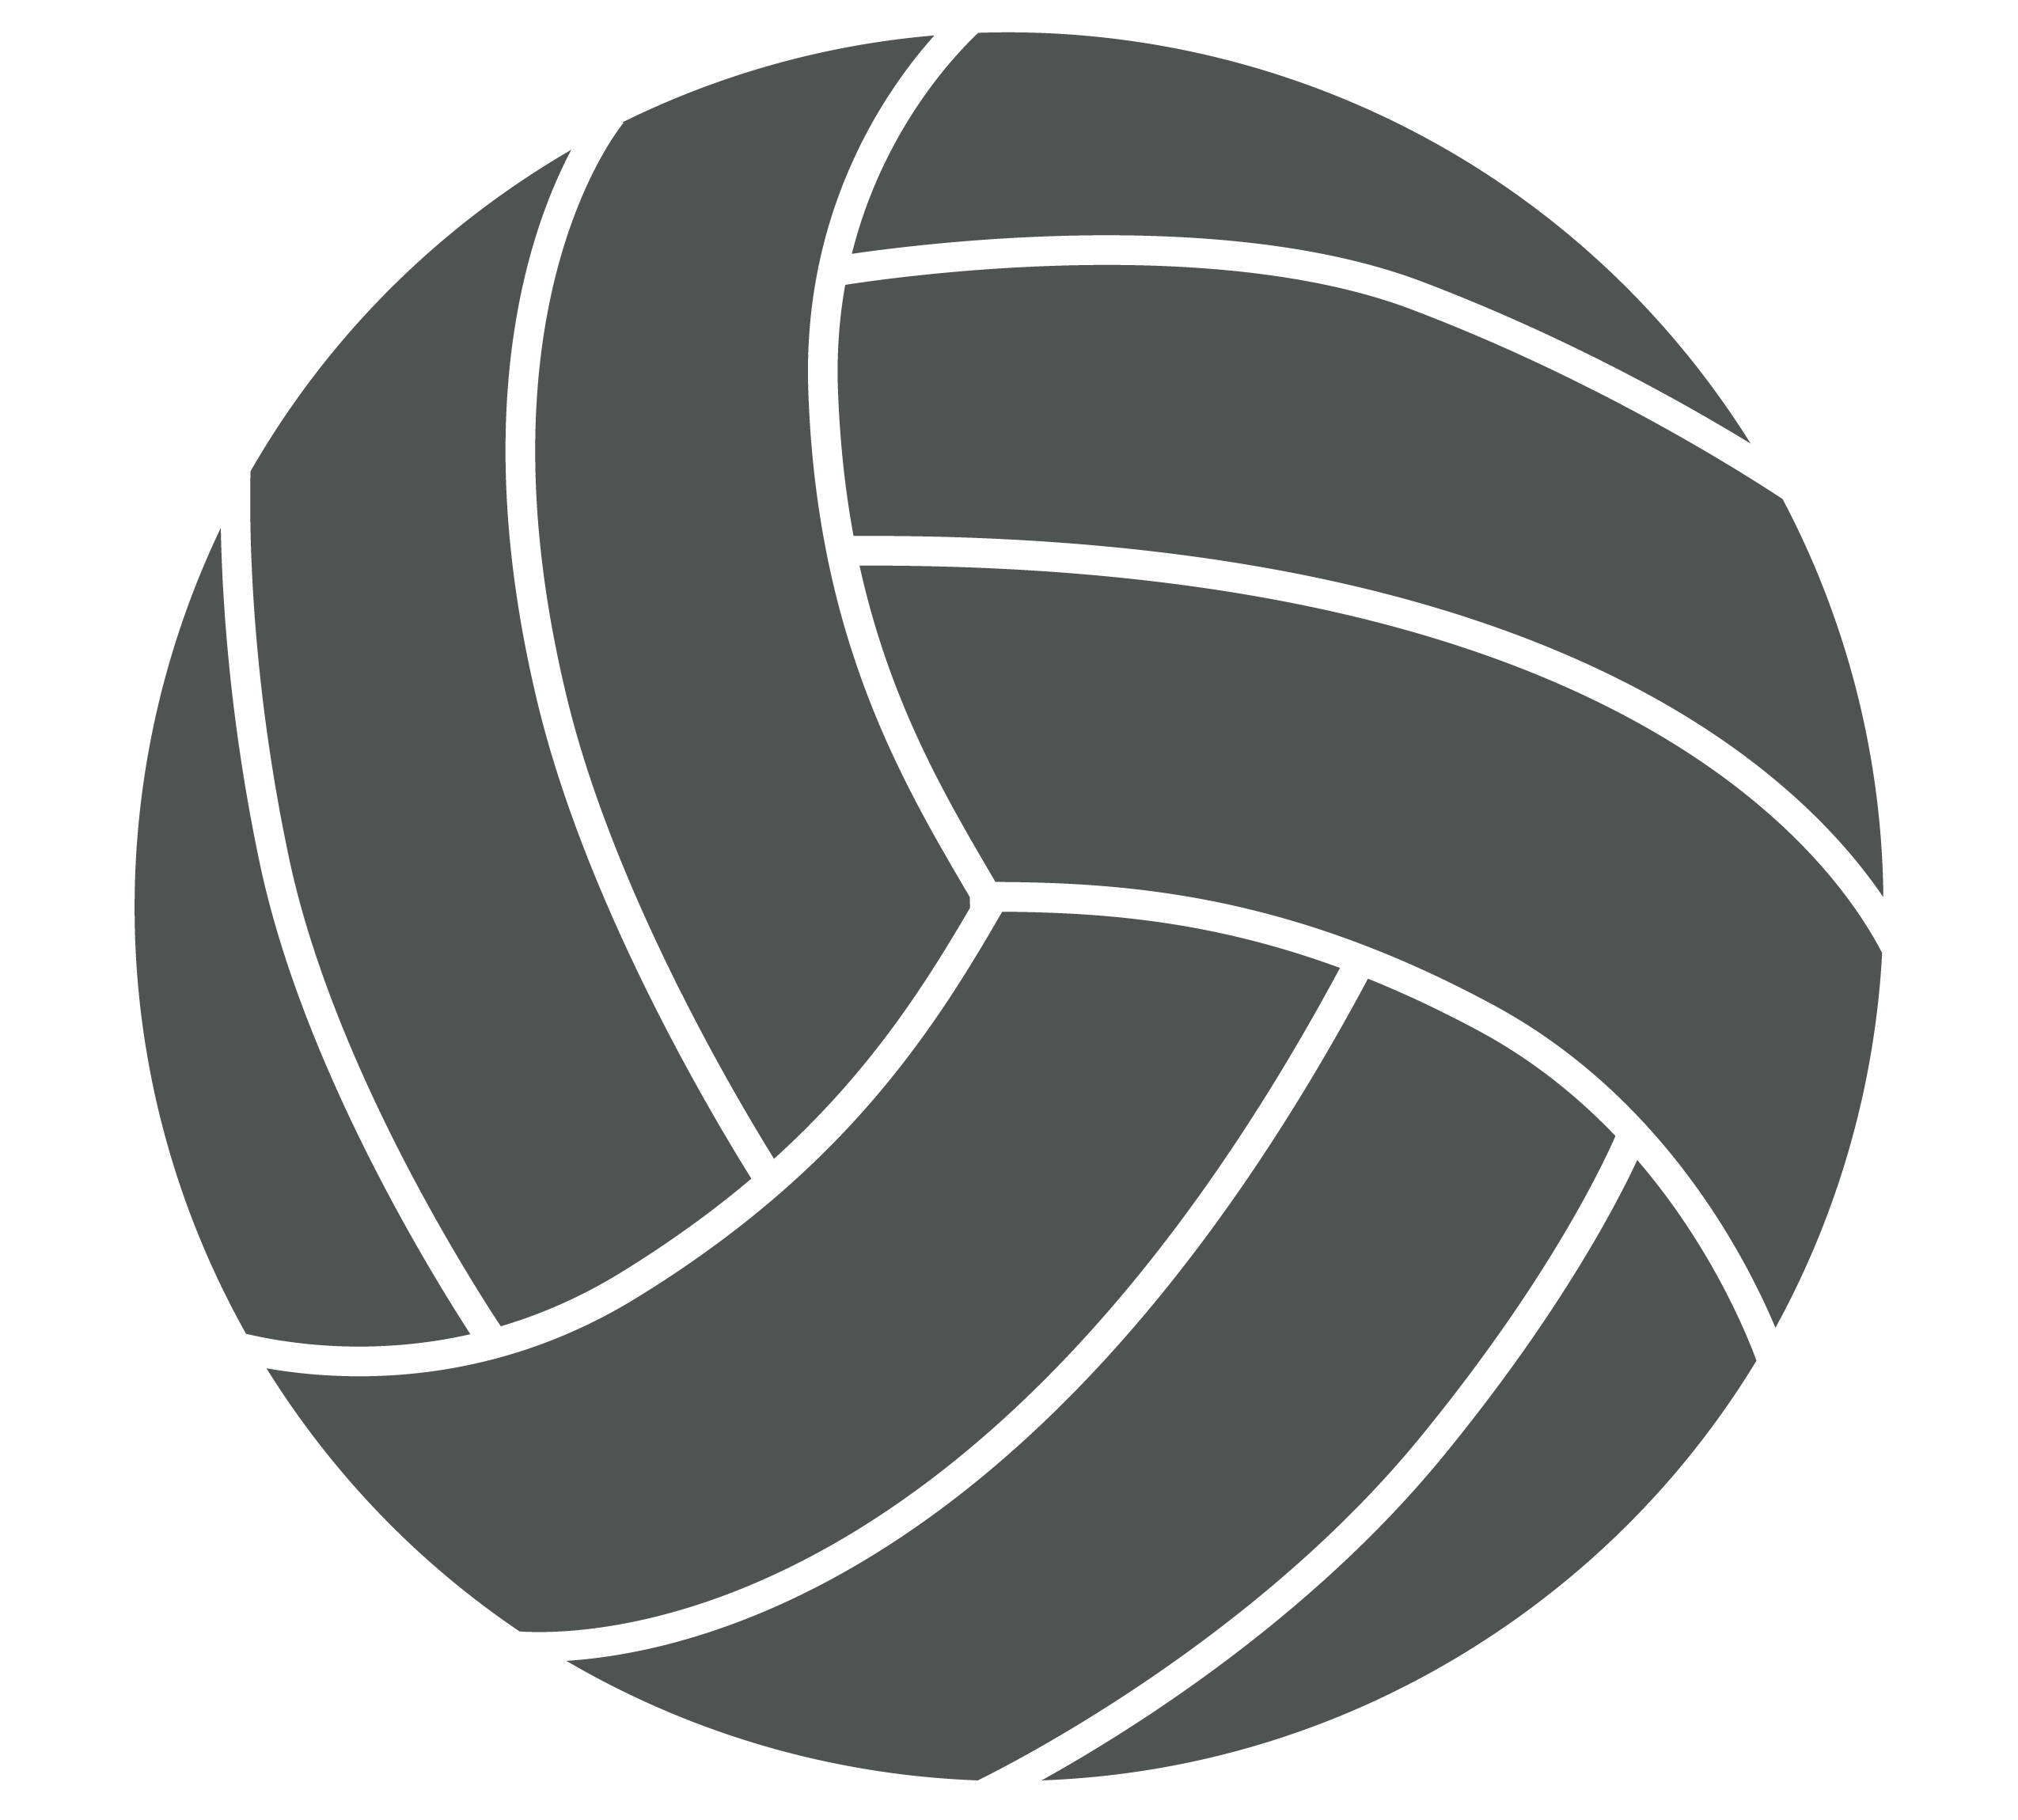 Png images free download. Clipart volleyball transparent background